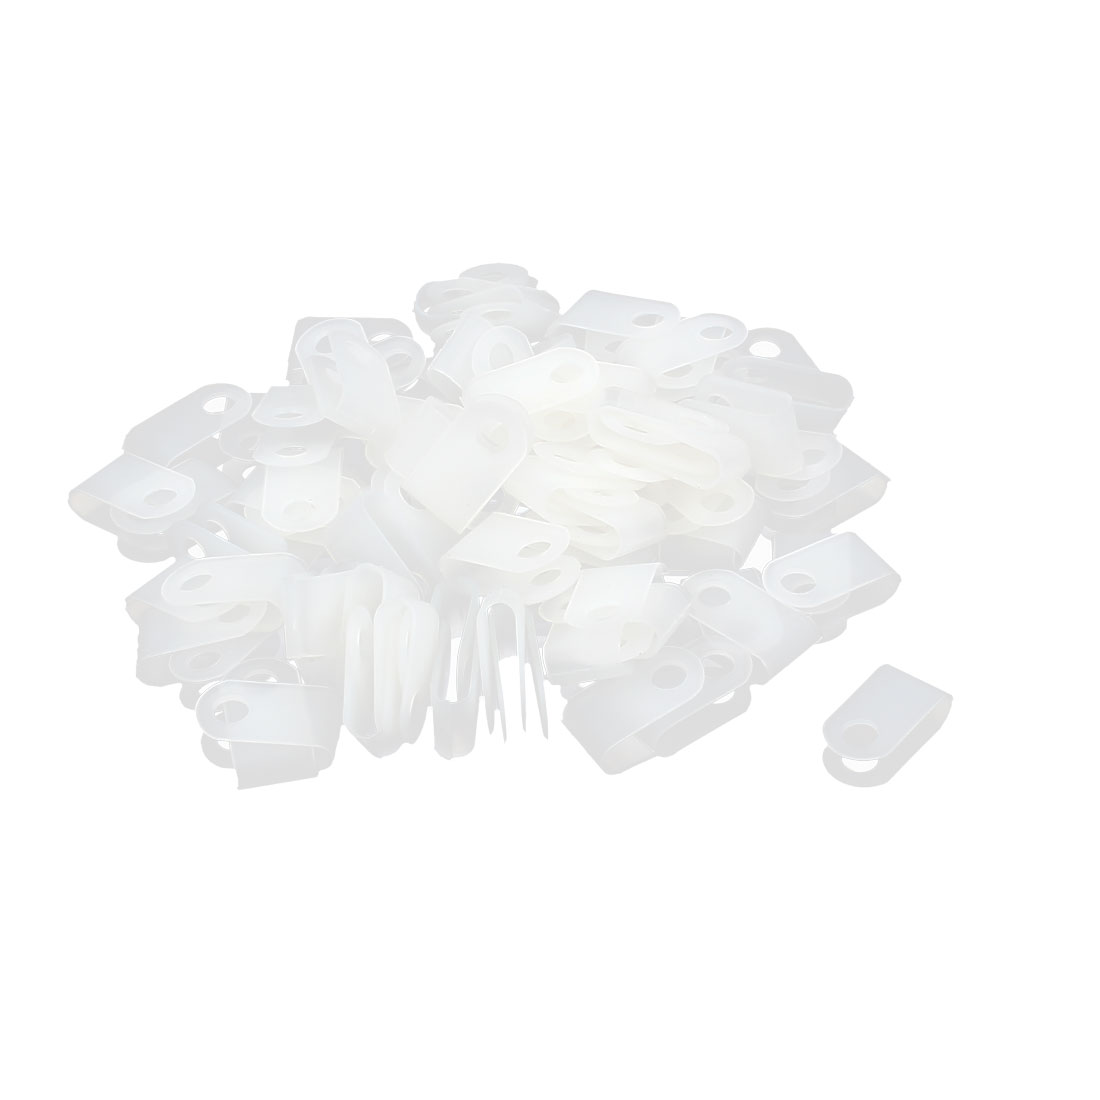 100Pcs White Plastic R Type Cable Clip Clamp for 3.3mm Dia Wire Hose Tube